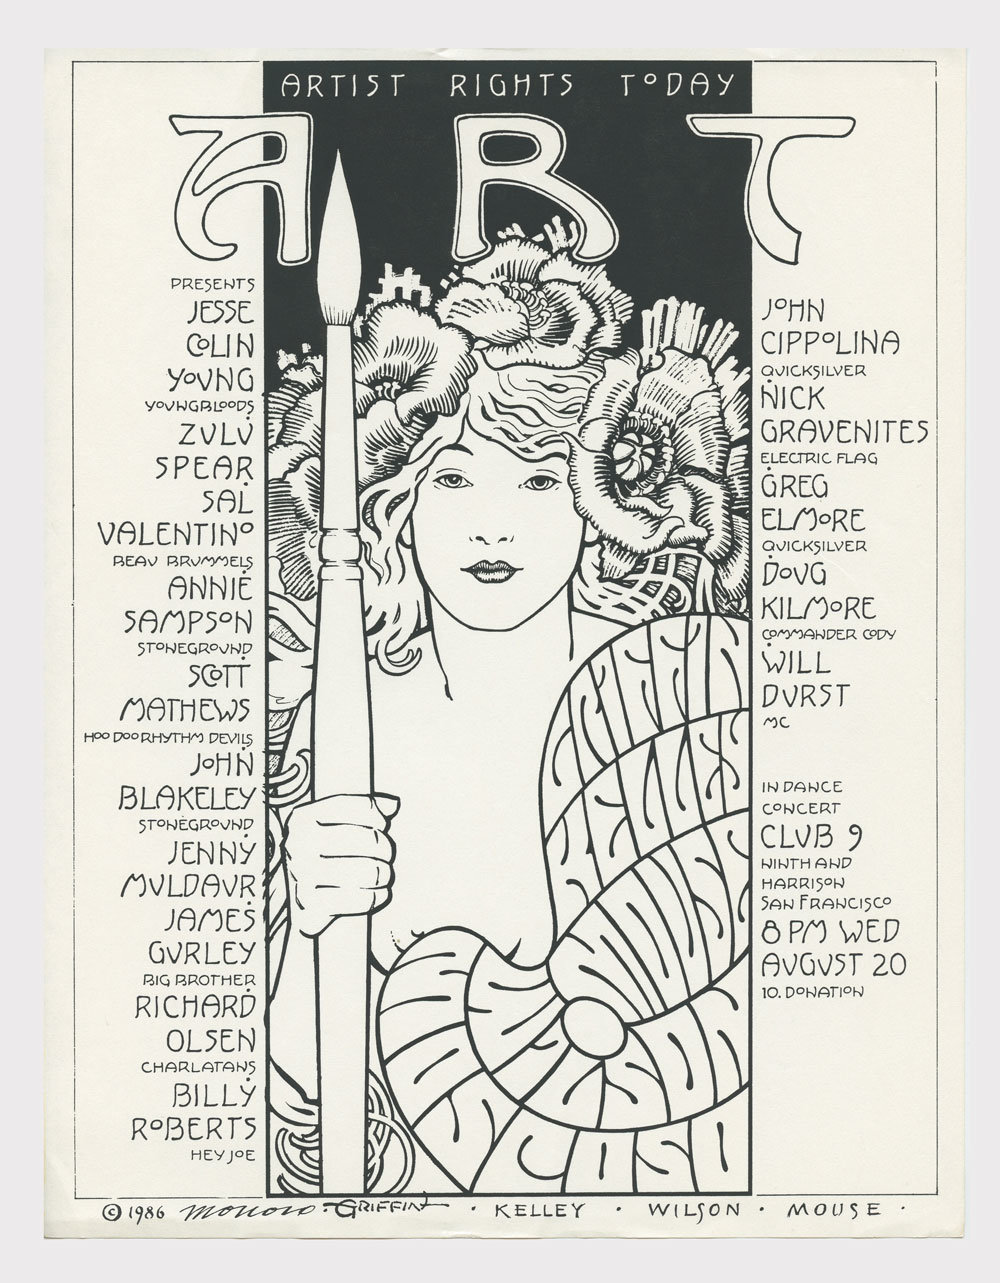 Artist Rights Today Benefit Handbill 1986 Aug 20 Club 9 Victor Moscoso Rick Griffin & more